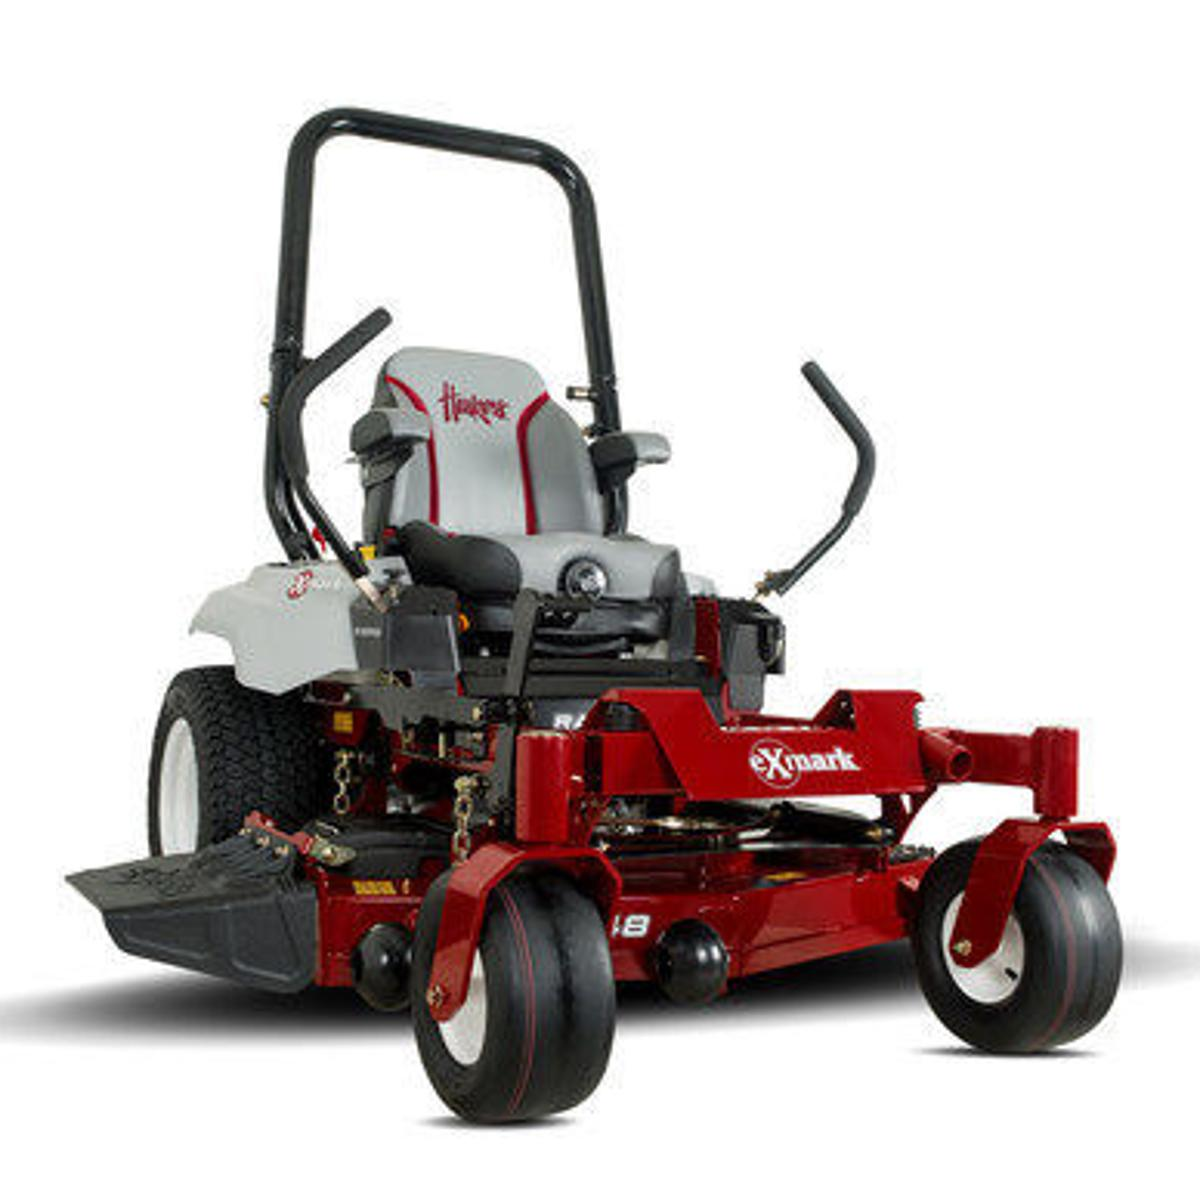 Exmark promotion allows you to mow down the competition